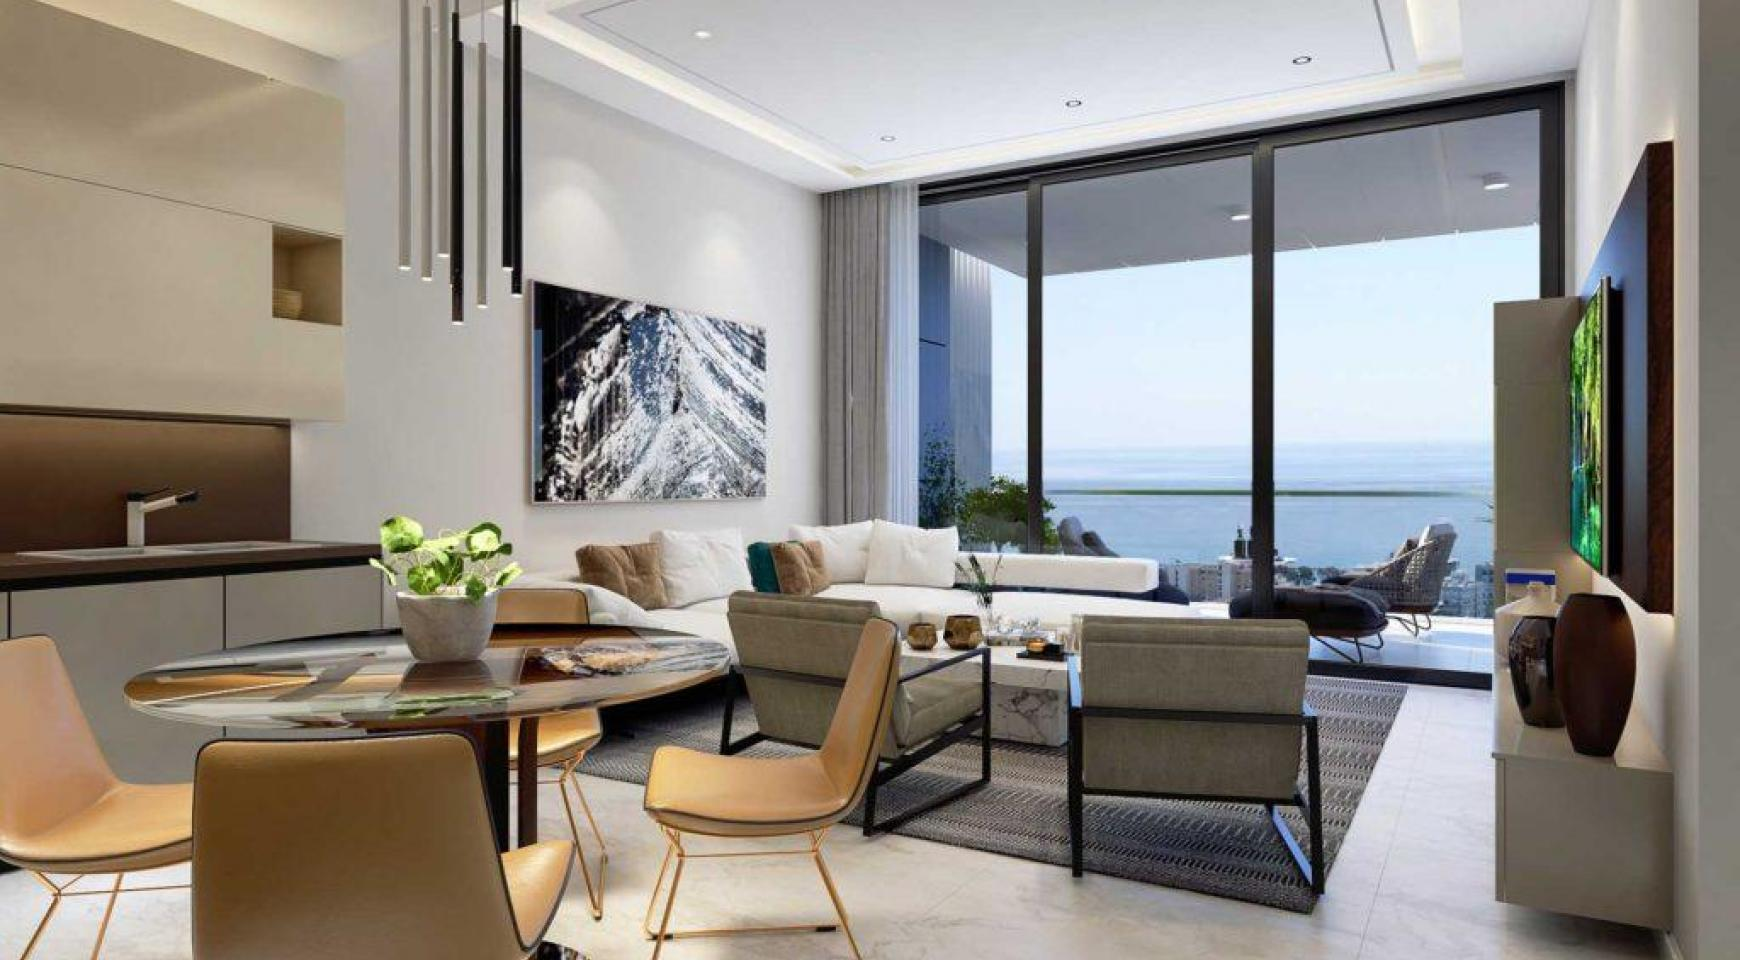 Spacious One Bedroom Apartment with Sea Views in a Luxury Complex - 1